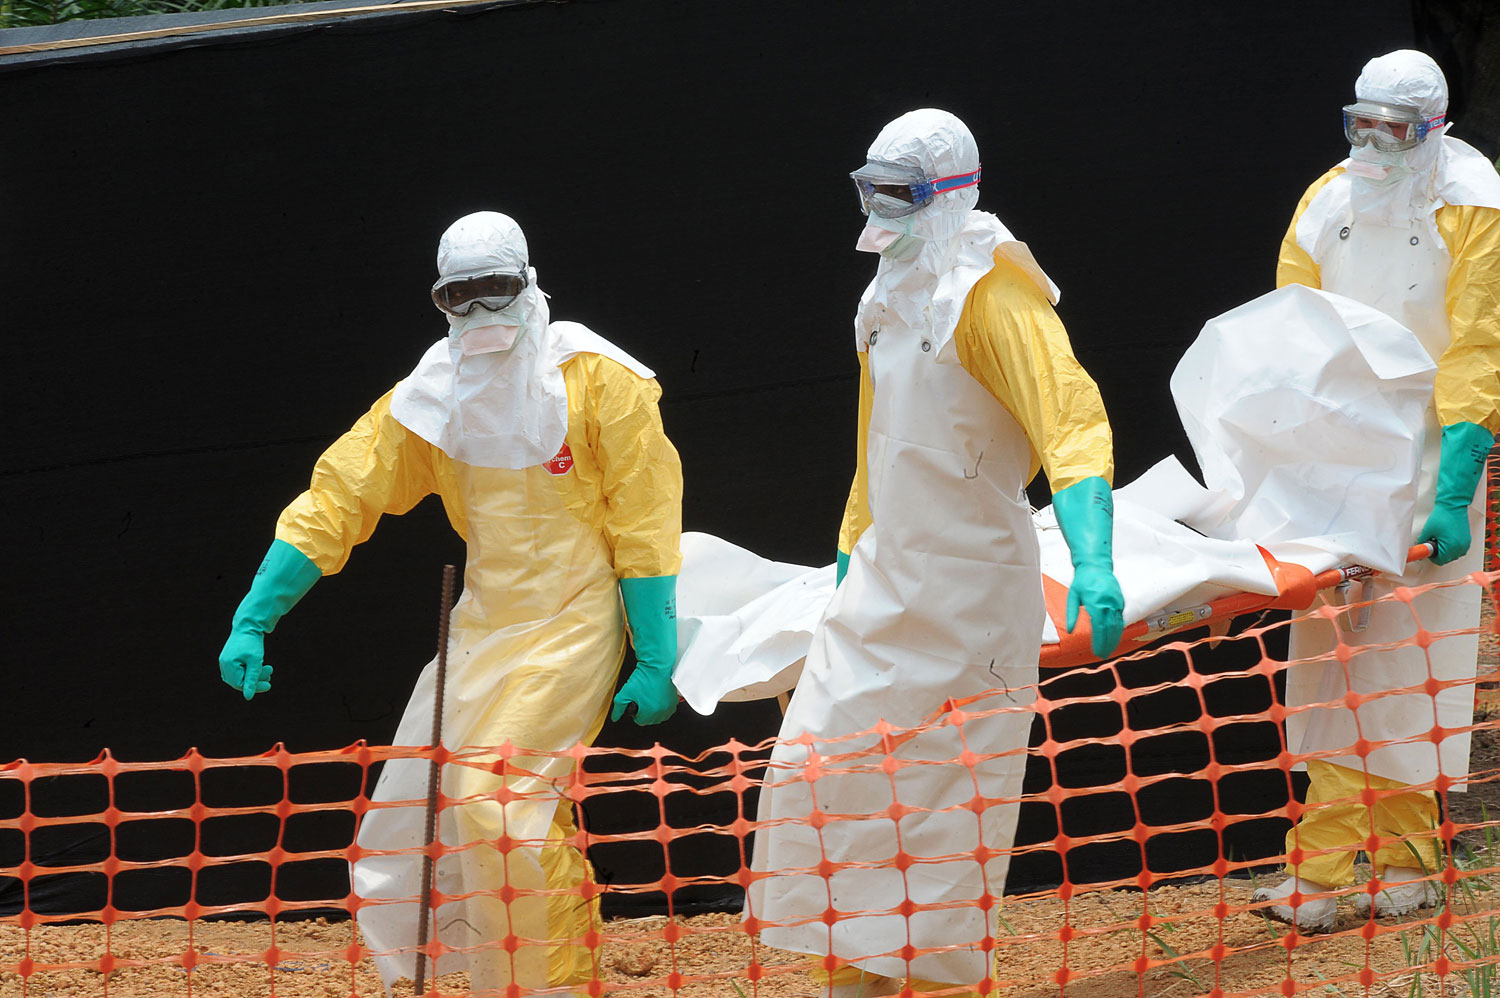 Doctors Without Borders staff carrying the body of a person killed by viral hemorrhagic fever at a center for victims of the Ebola virus in Gueckedou on April 1, 2014.